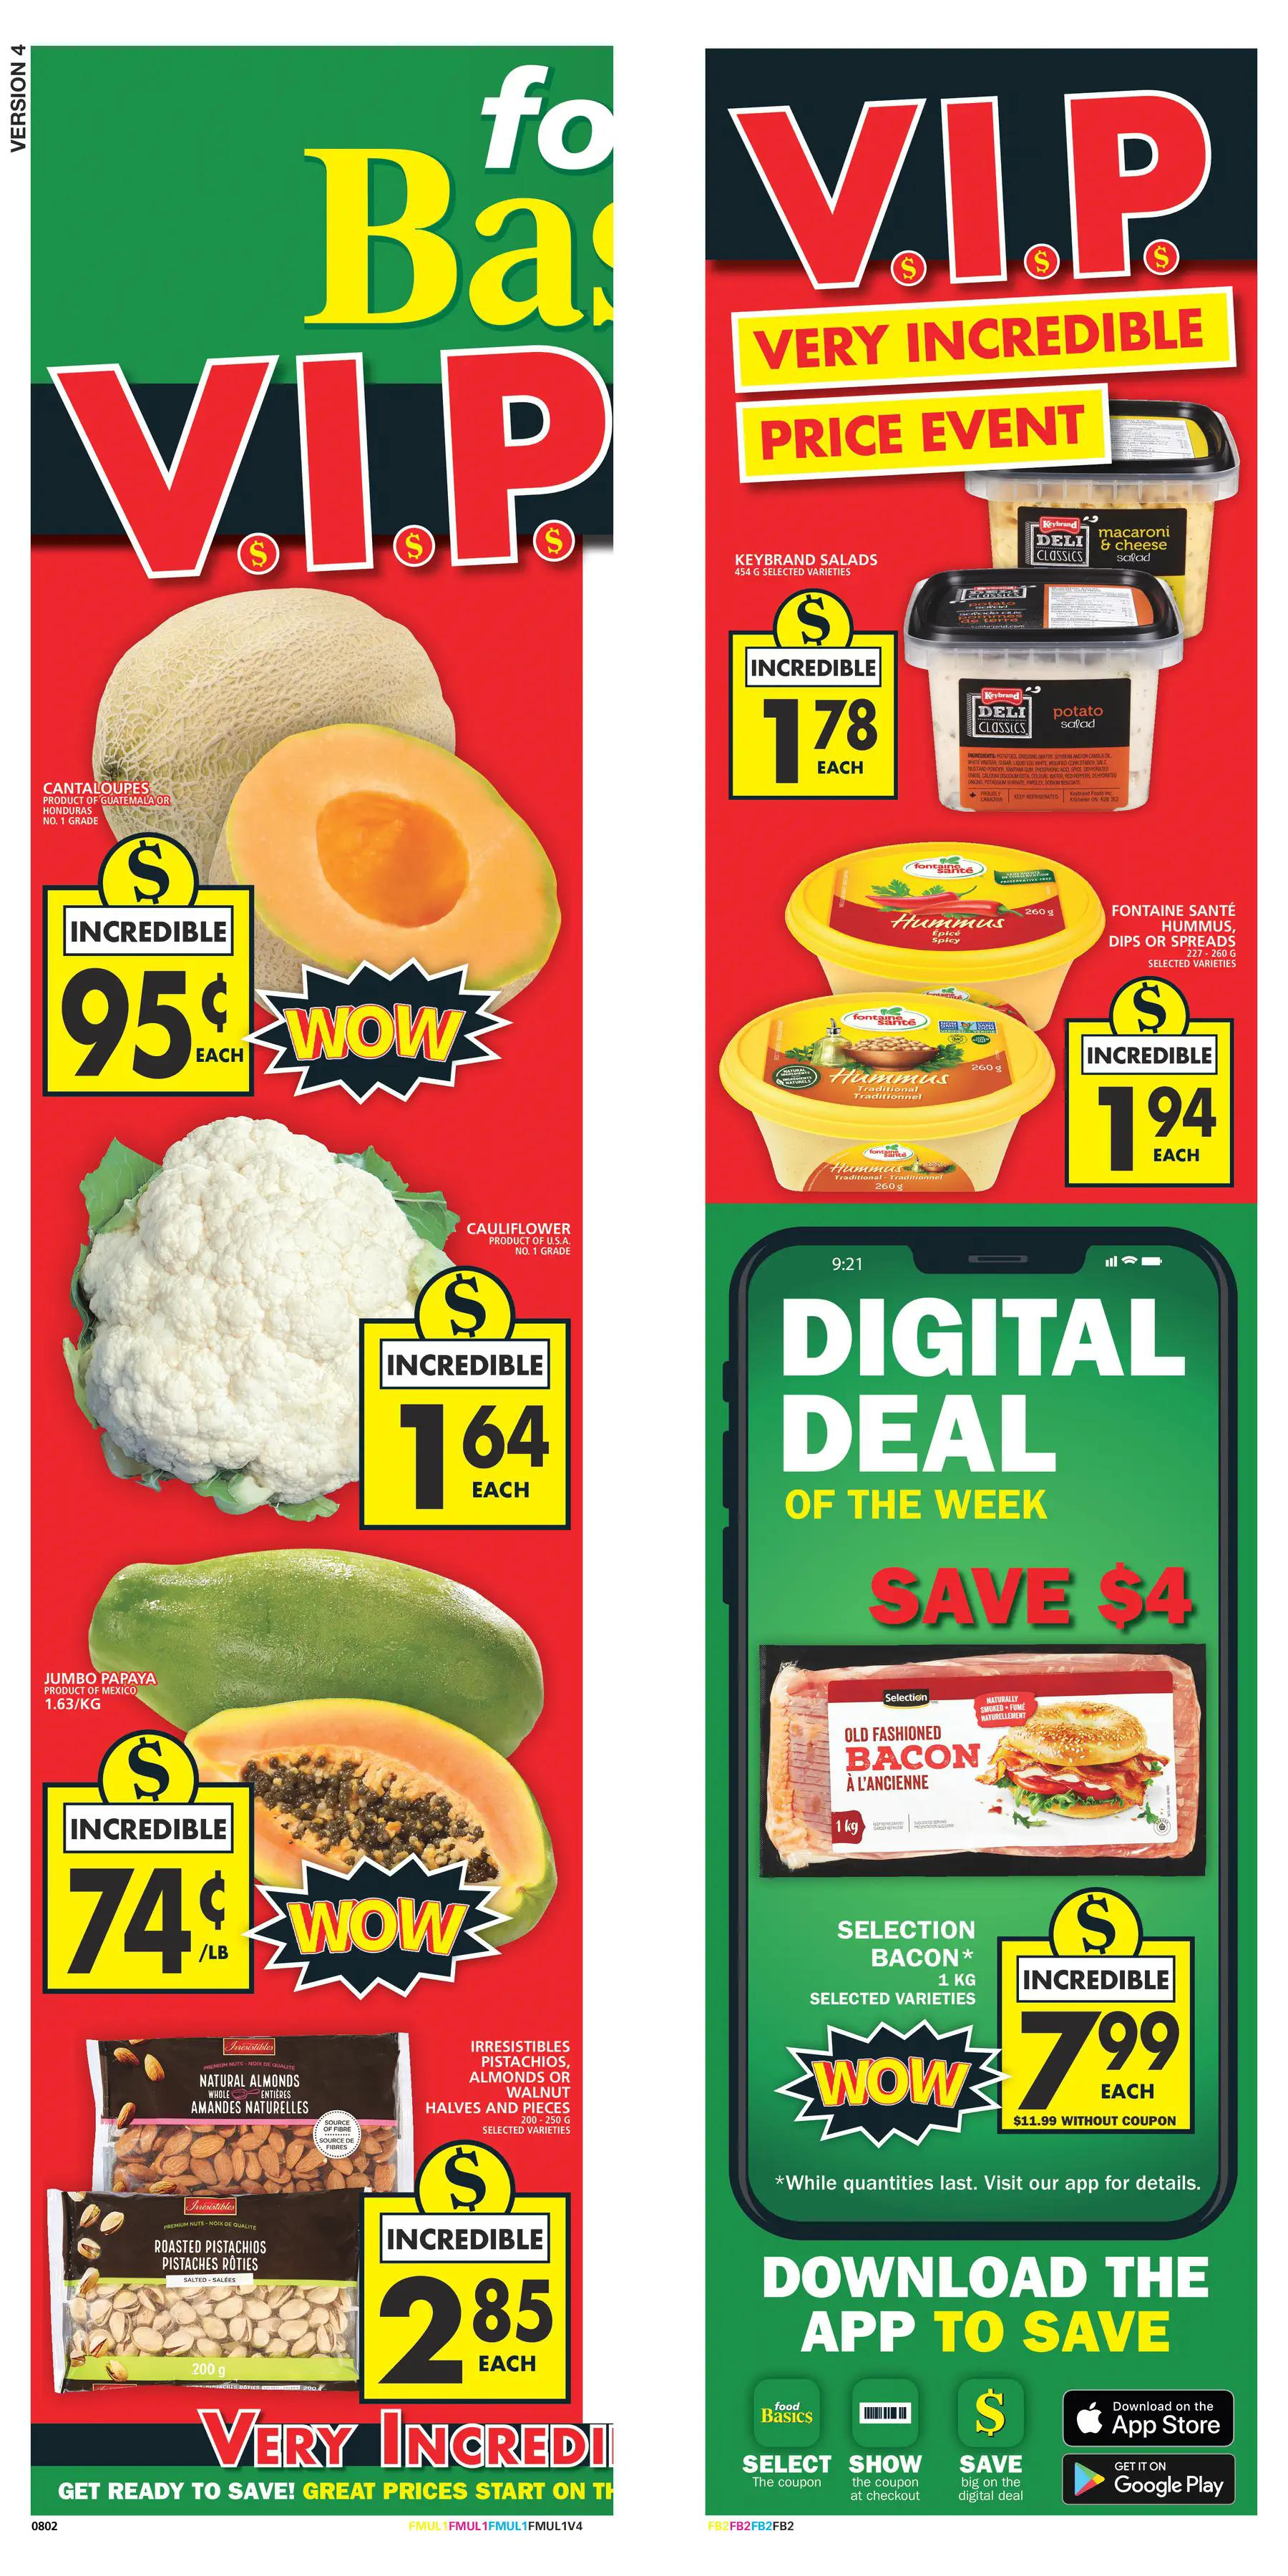 Food Basics - Weekly Flyer Specials - Page 1